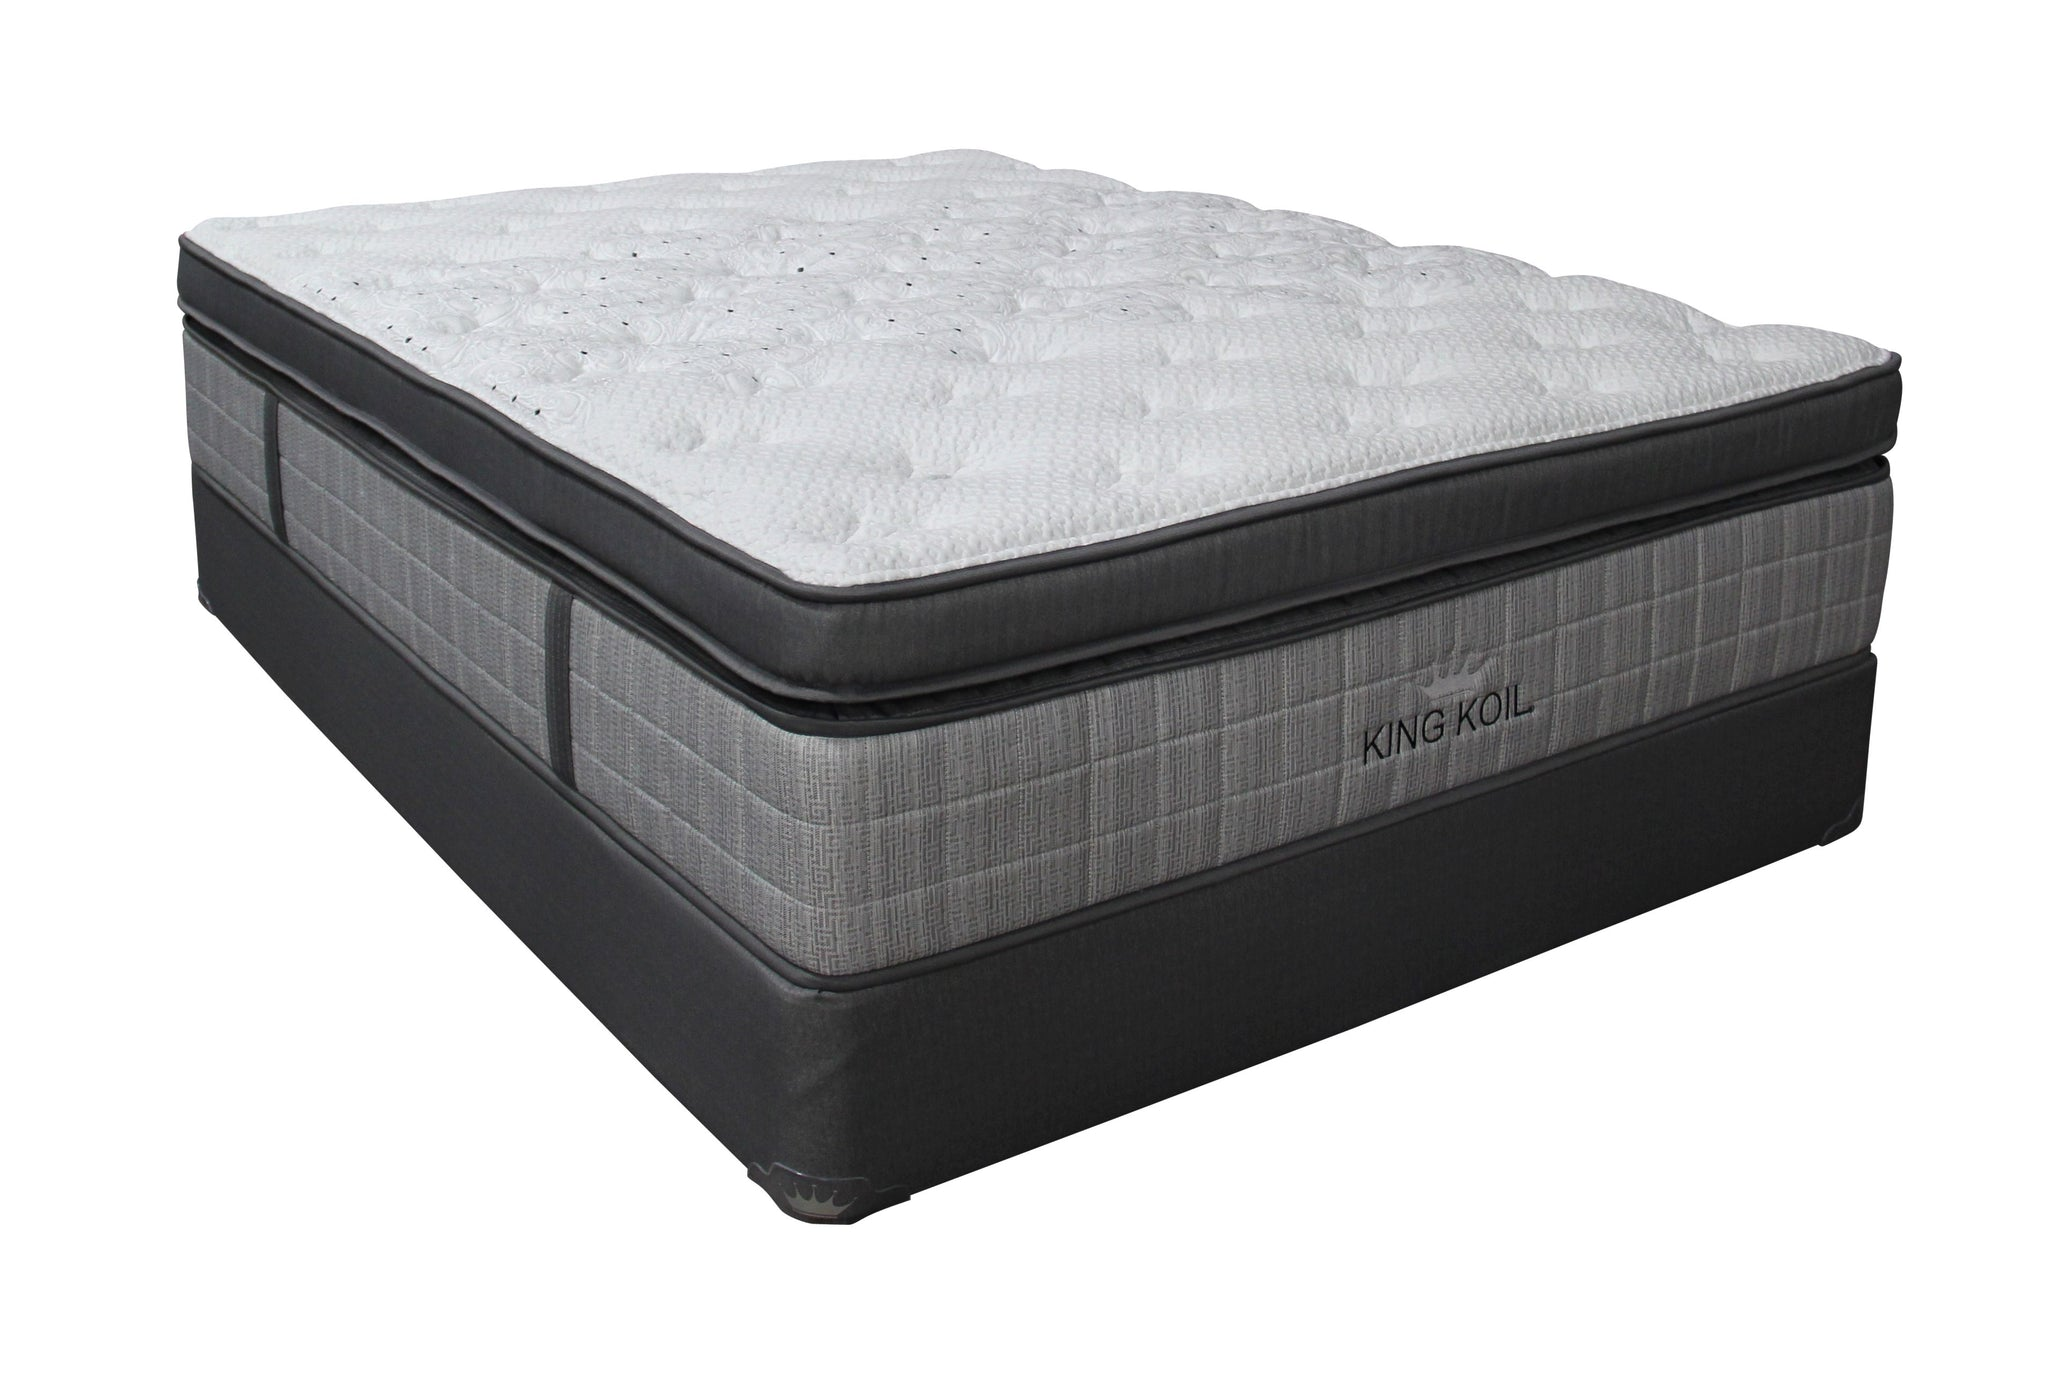 products pillow depot landau king pt tx topper ae top mattress koil